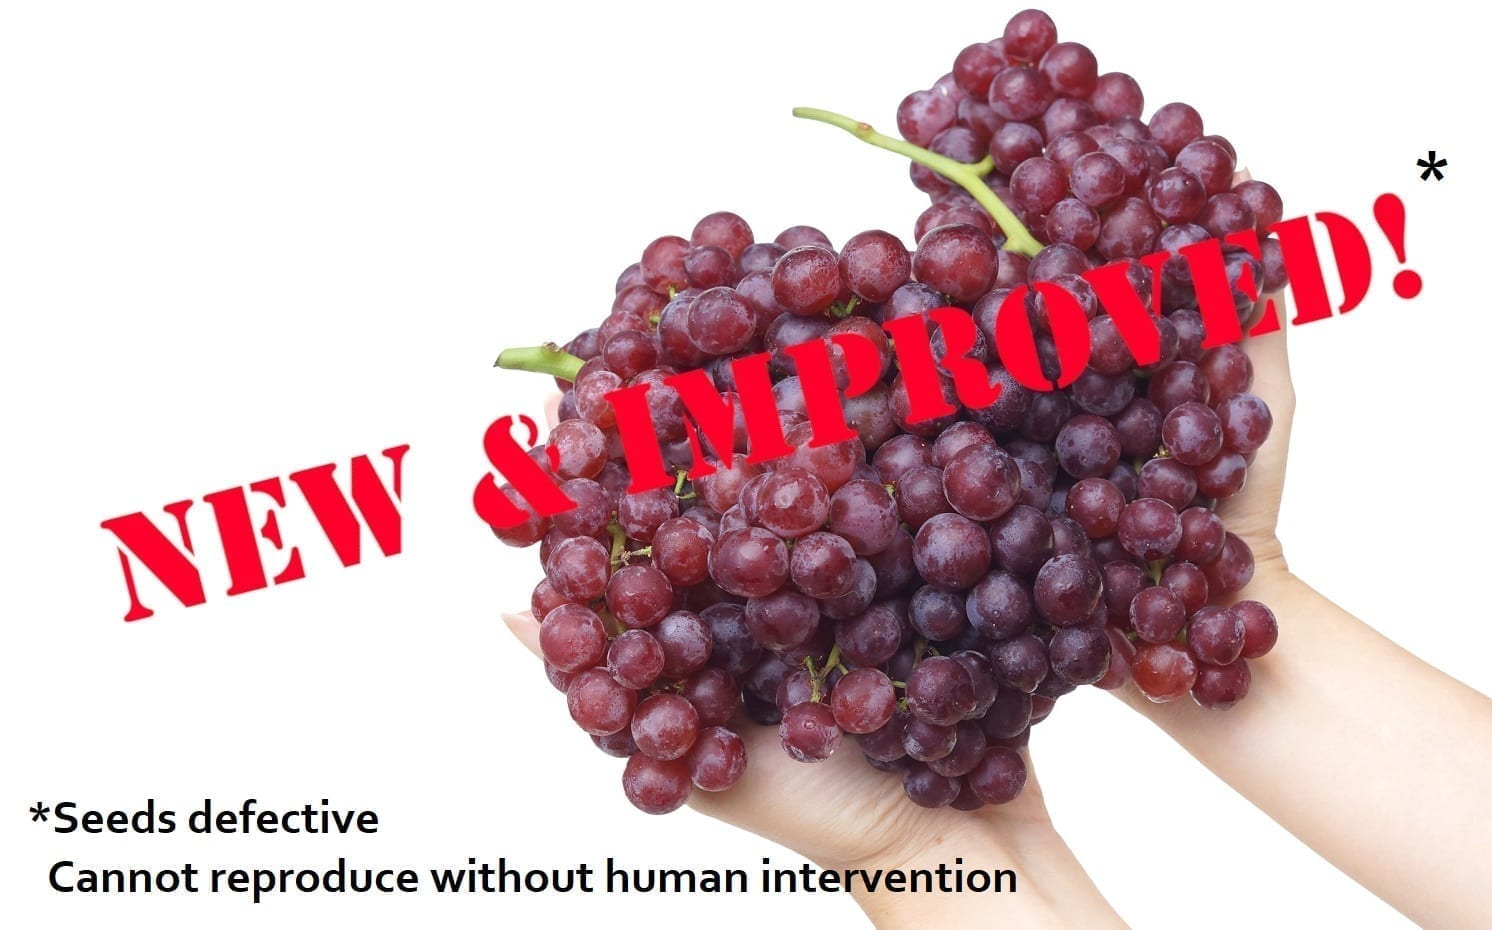 """Seedless grapes labeled """"New & Improved""""* Cannot reproduce without human intervention: Photo 99401766 © Weerapat Kiatdumrong - Dreamstime.com"""